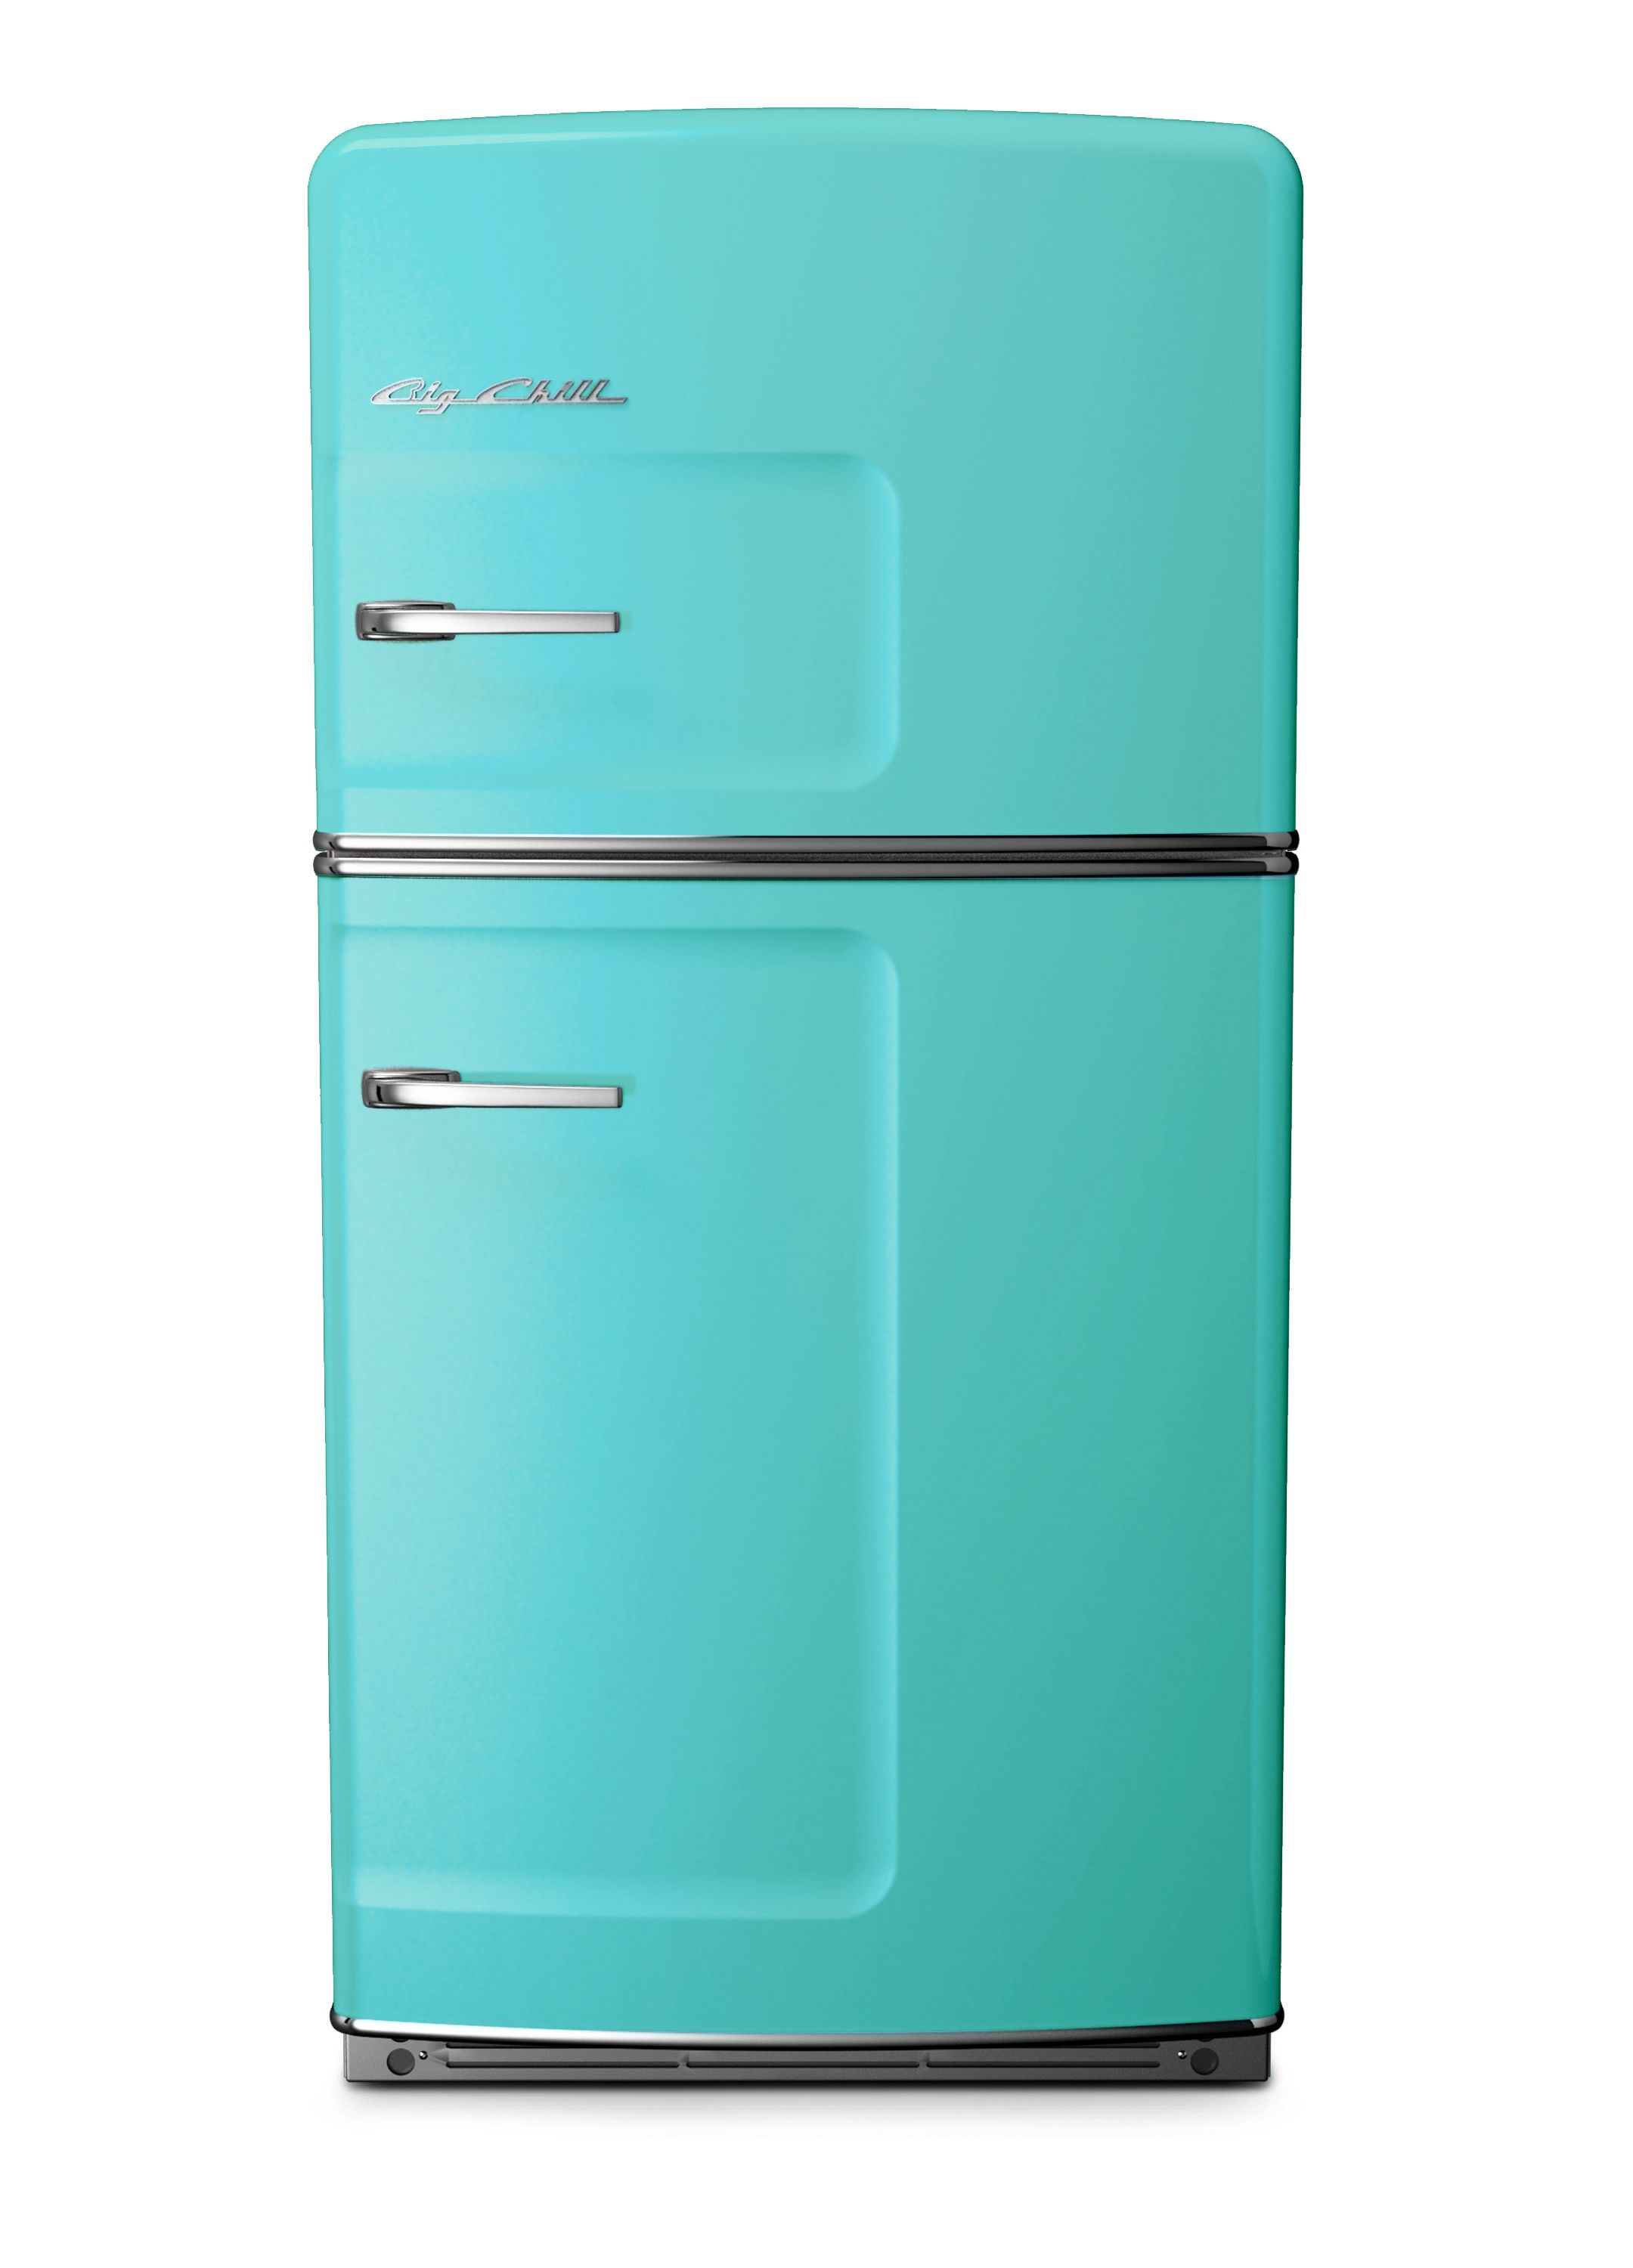 turquoise retro fridge what a chill color turquoise pinterest